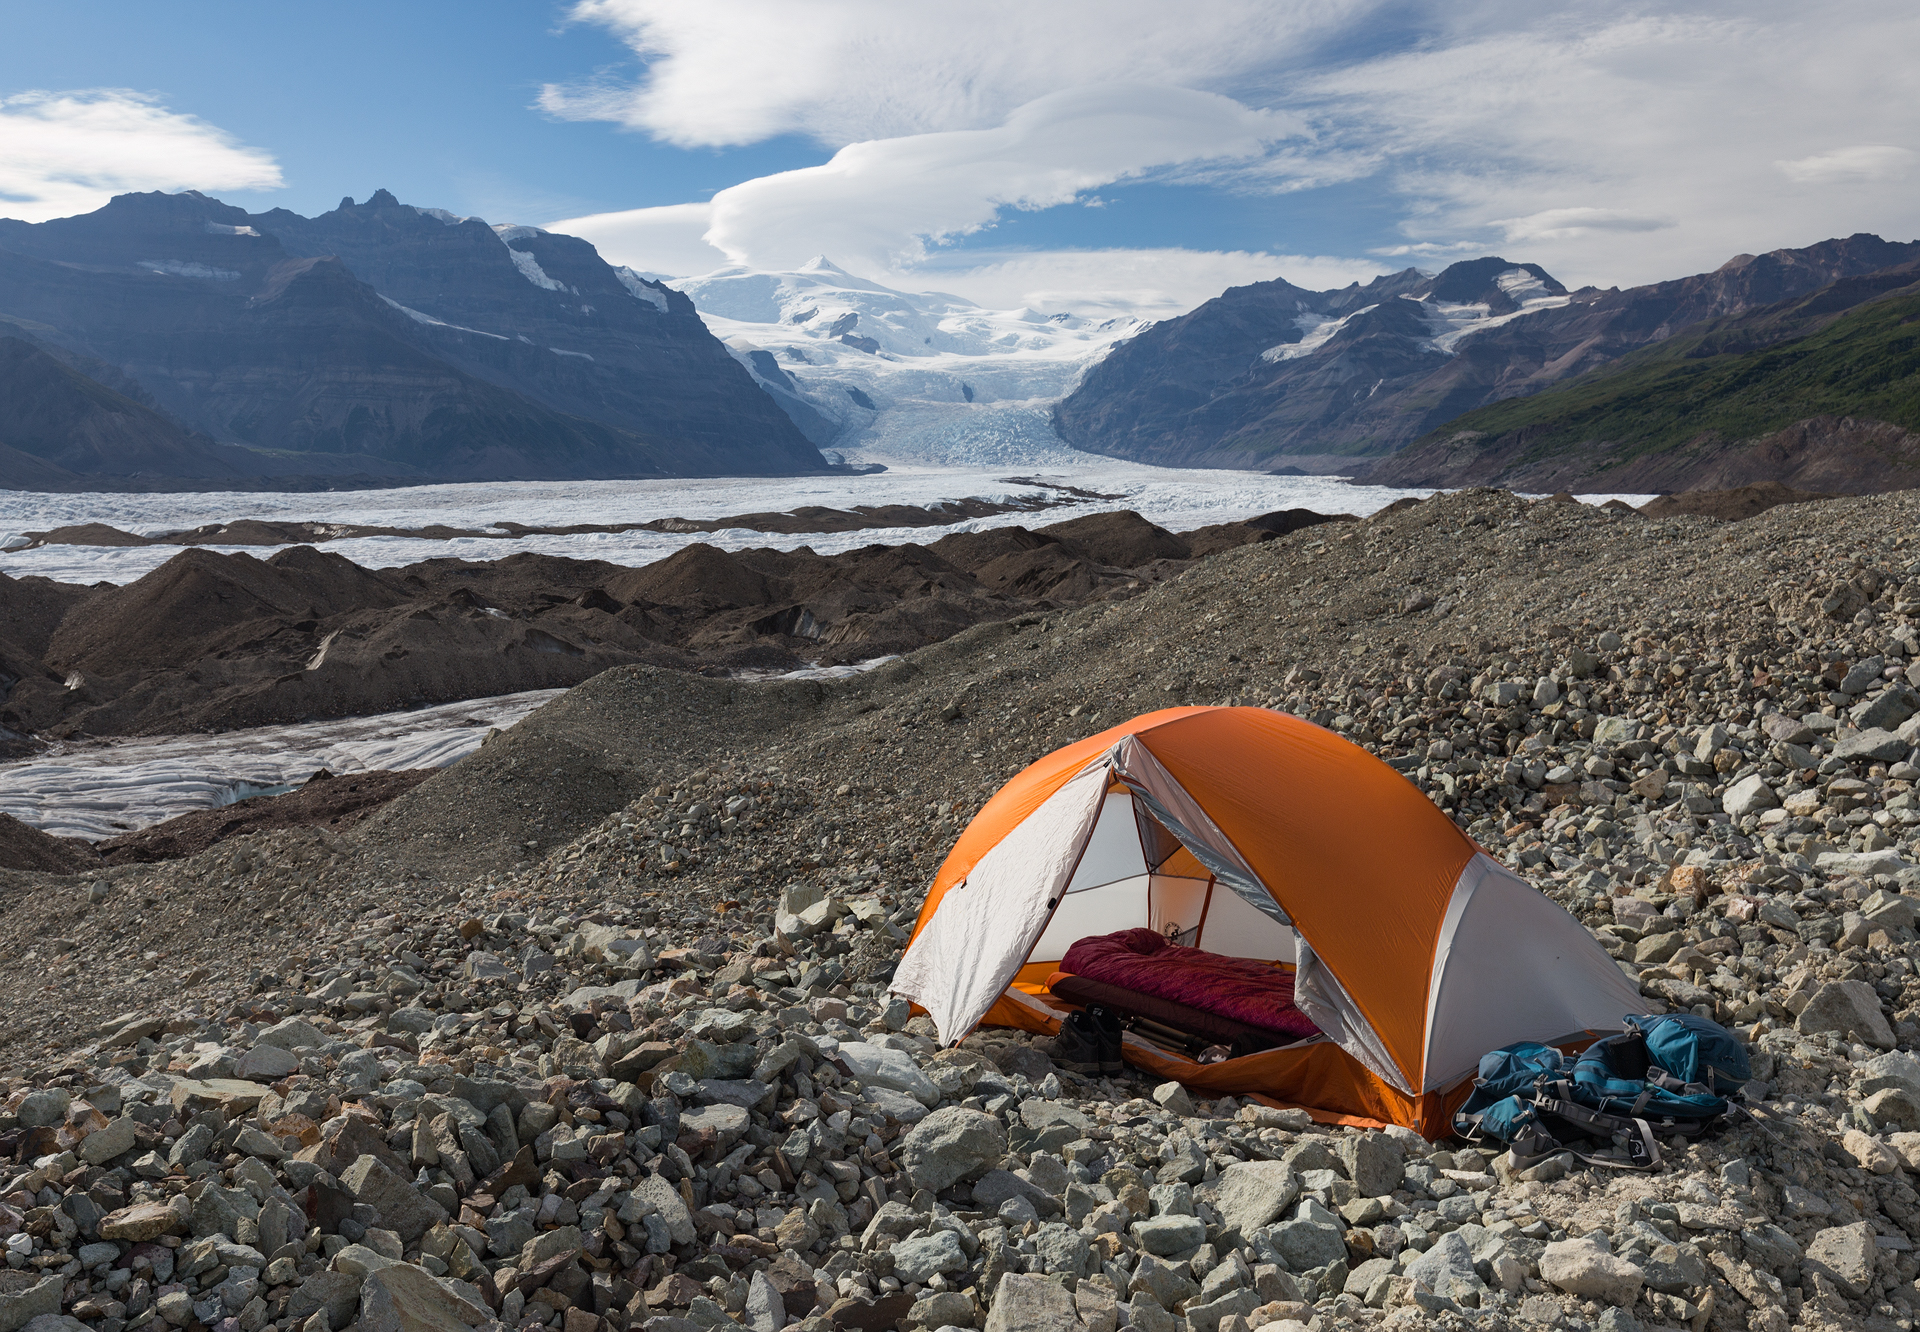 An example of terrain that requires an inflatable sleeping pad, yikes! (Wrangell-St. Elias National Park, August 2017)